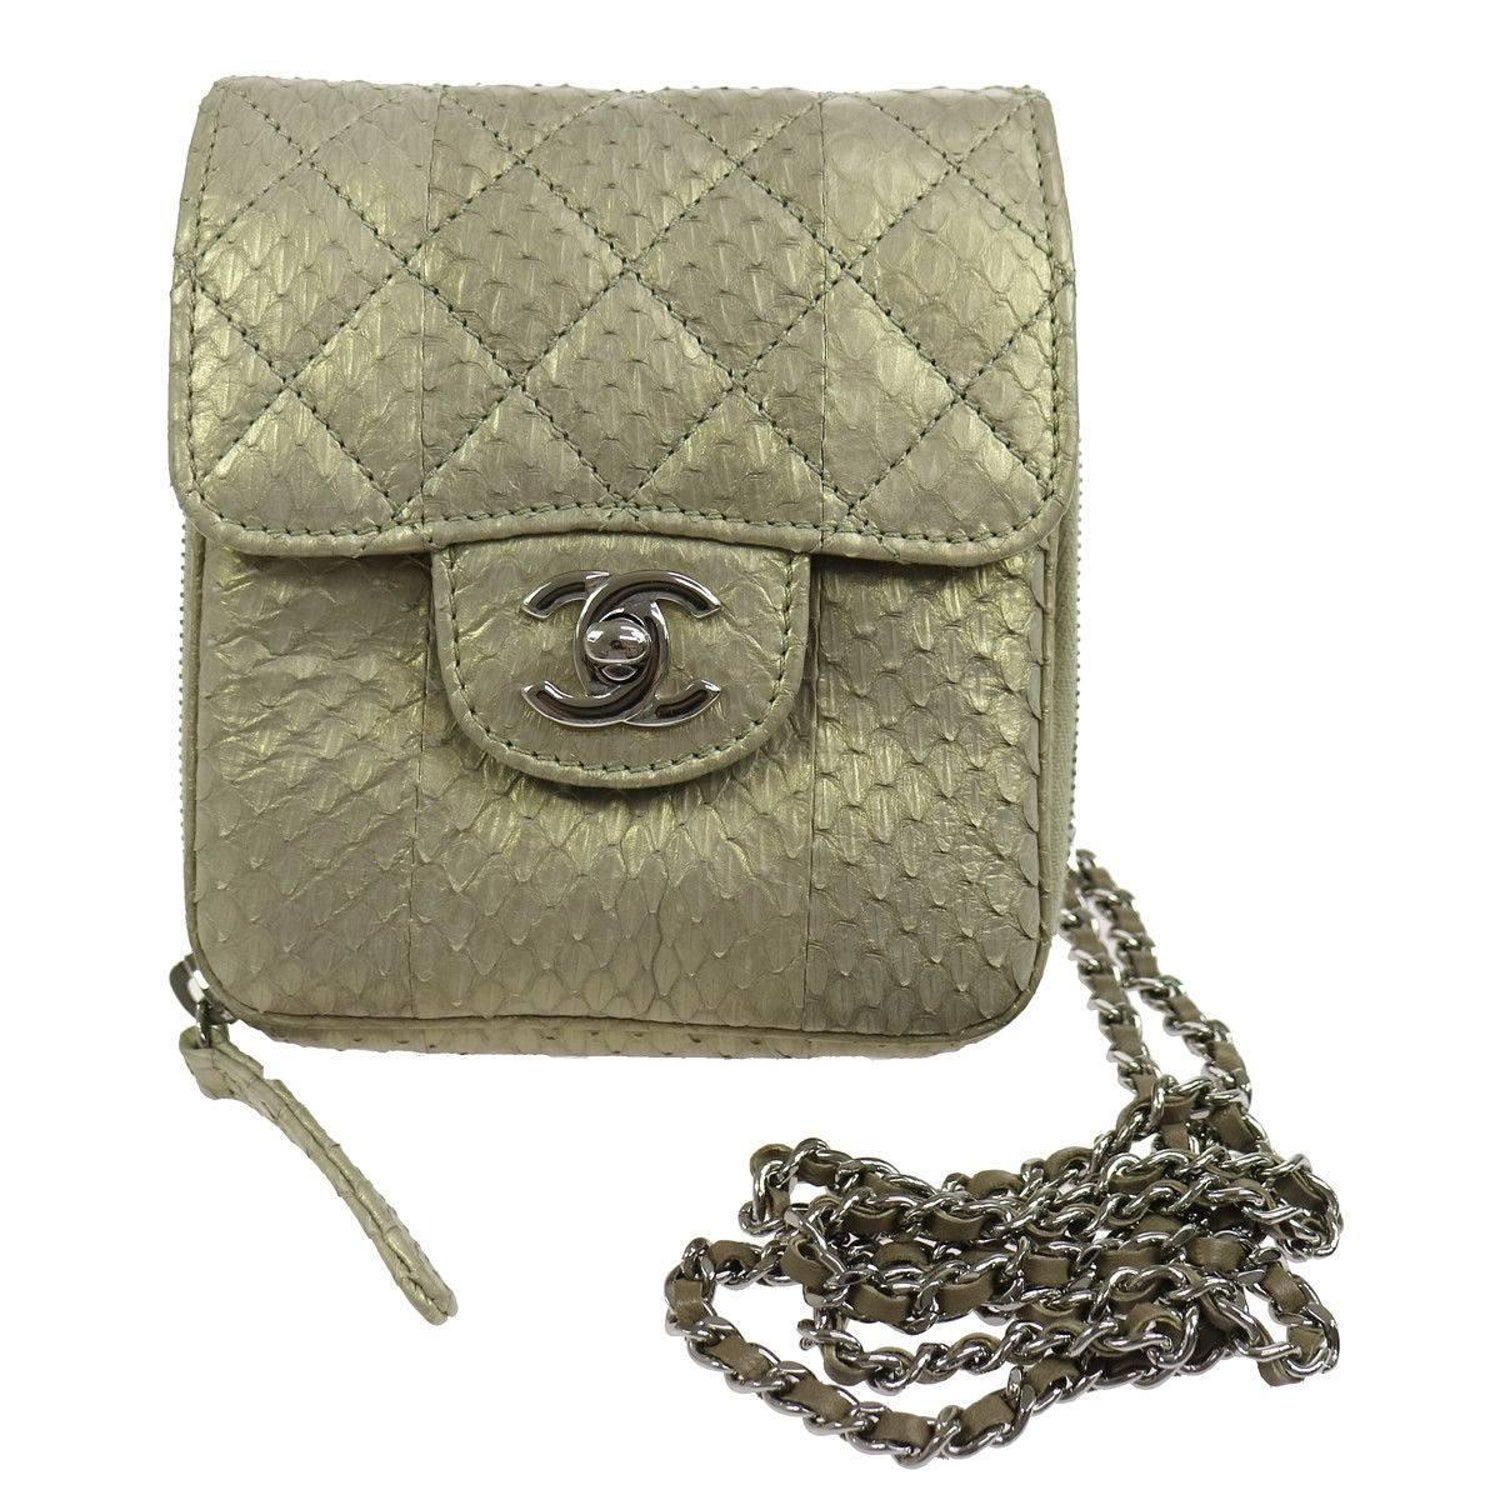 967dd01959cd Chanel Python Iridescent Evening Wallet on Chain WOC Crossbody Shoulder  Flap Bag For Sale at 1stdibs